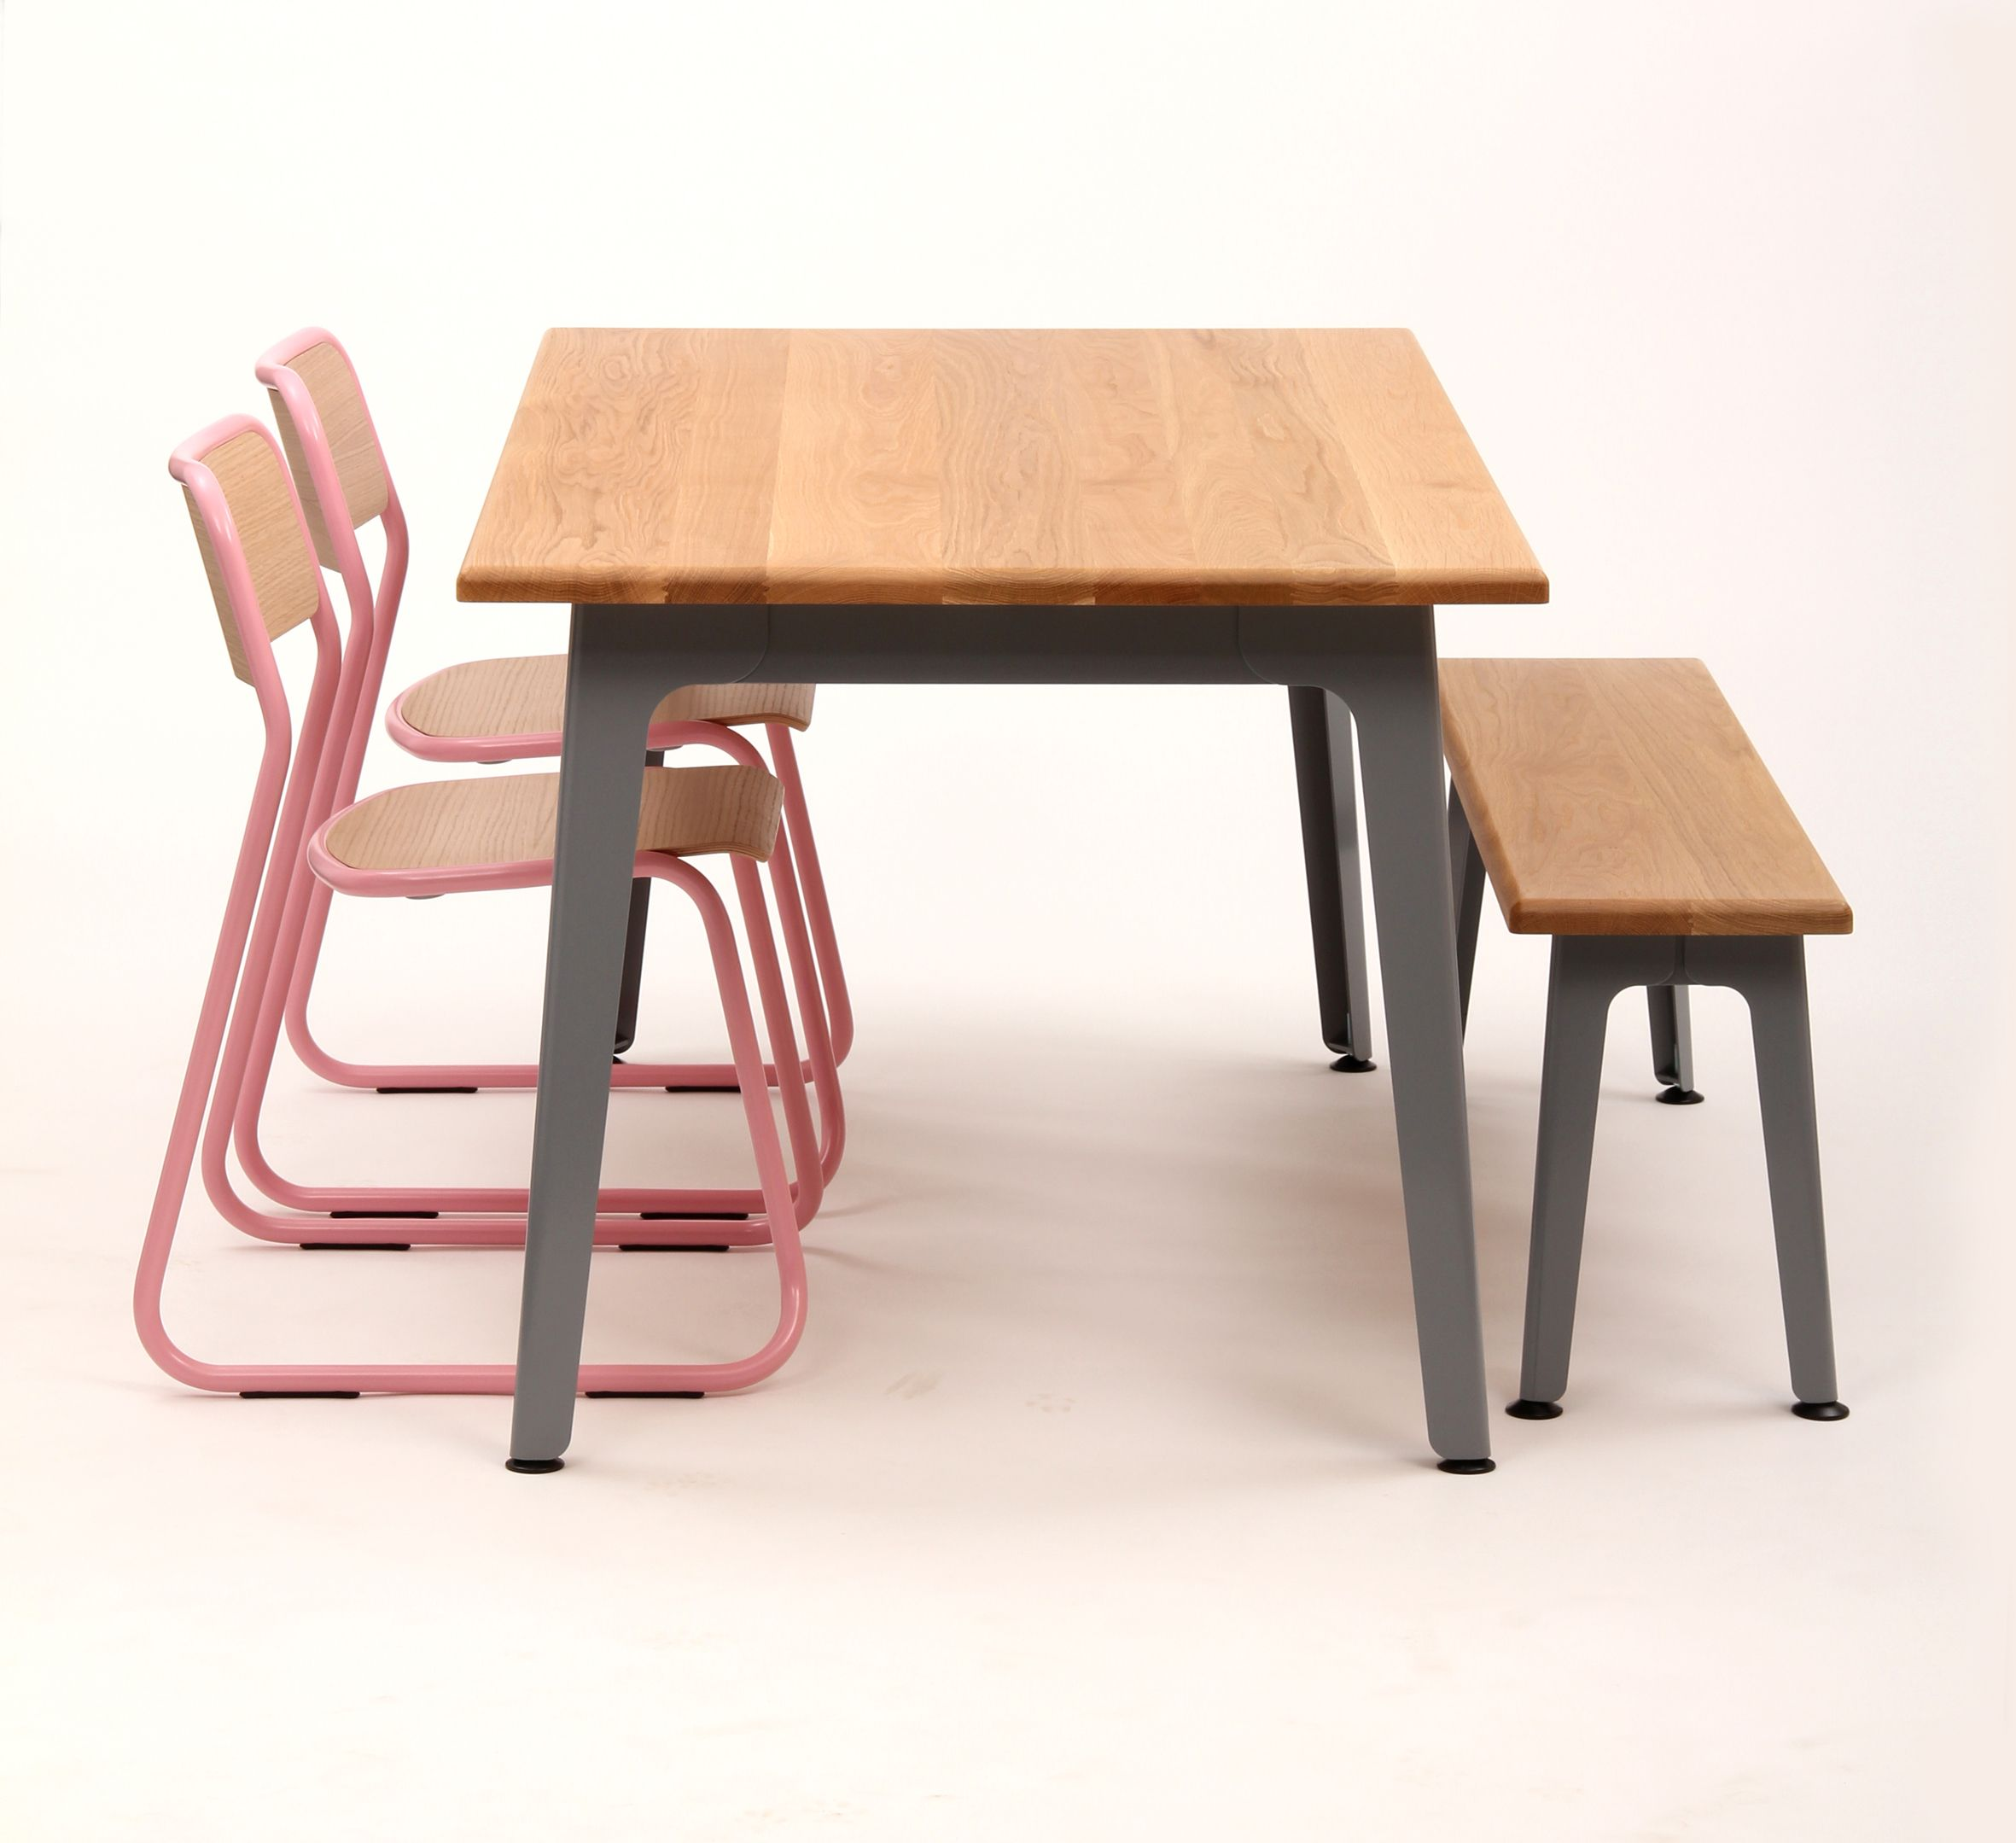 Swell Naughtone Fold Table Fold Bench And Bounce Chairs Fold Caraccident5 Cool Chair Designs And Ideas Caraccident5Info